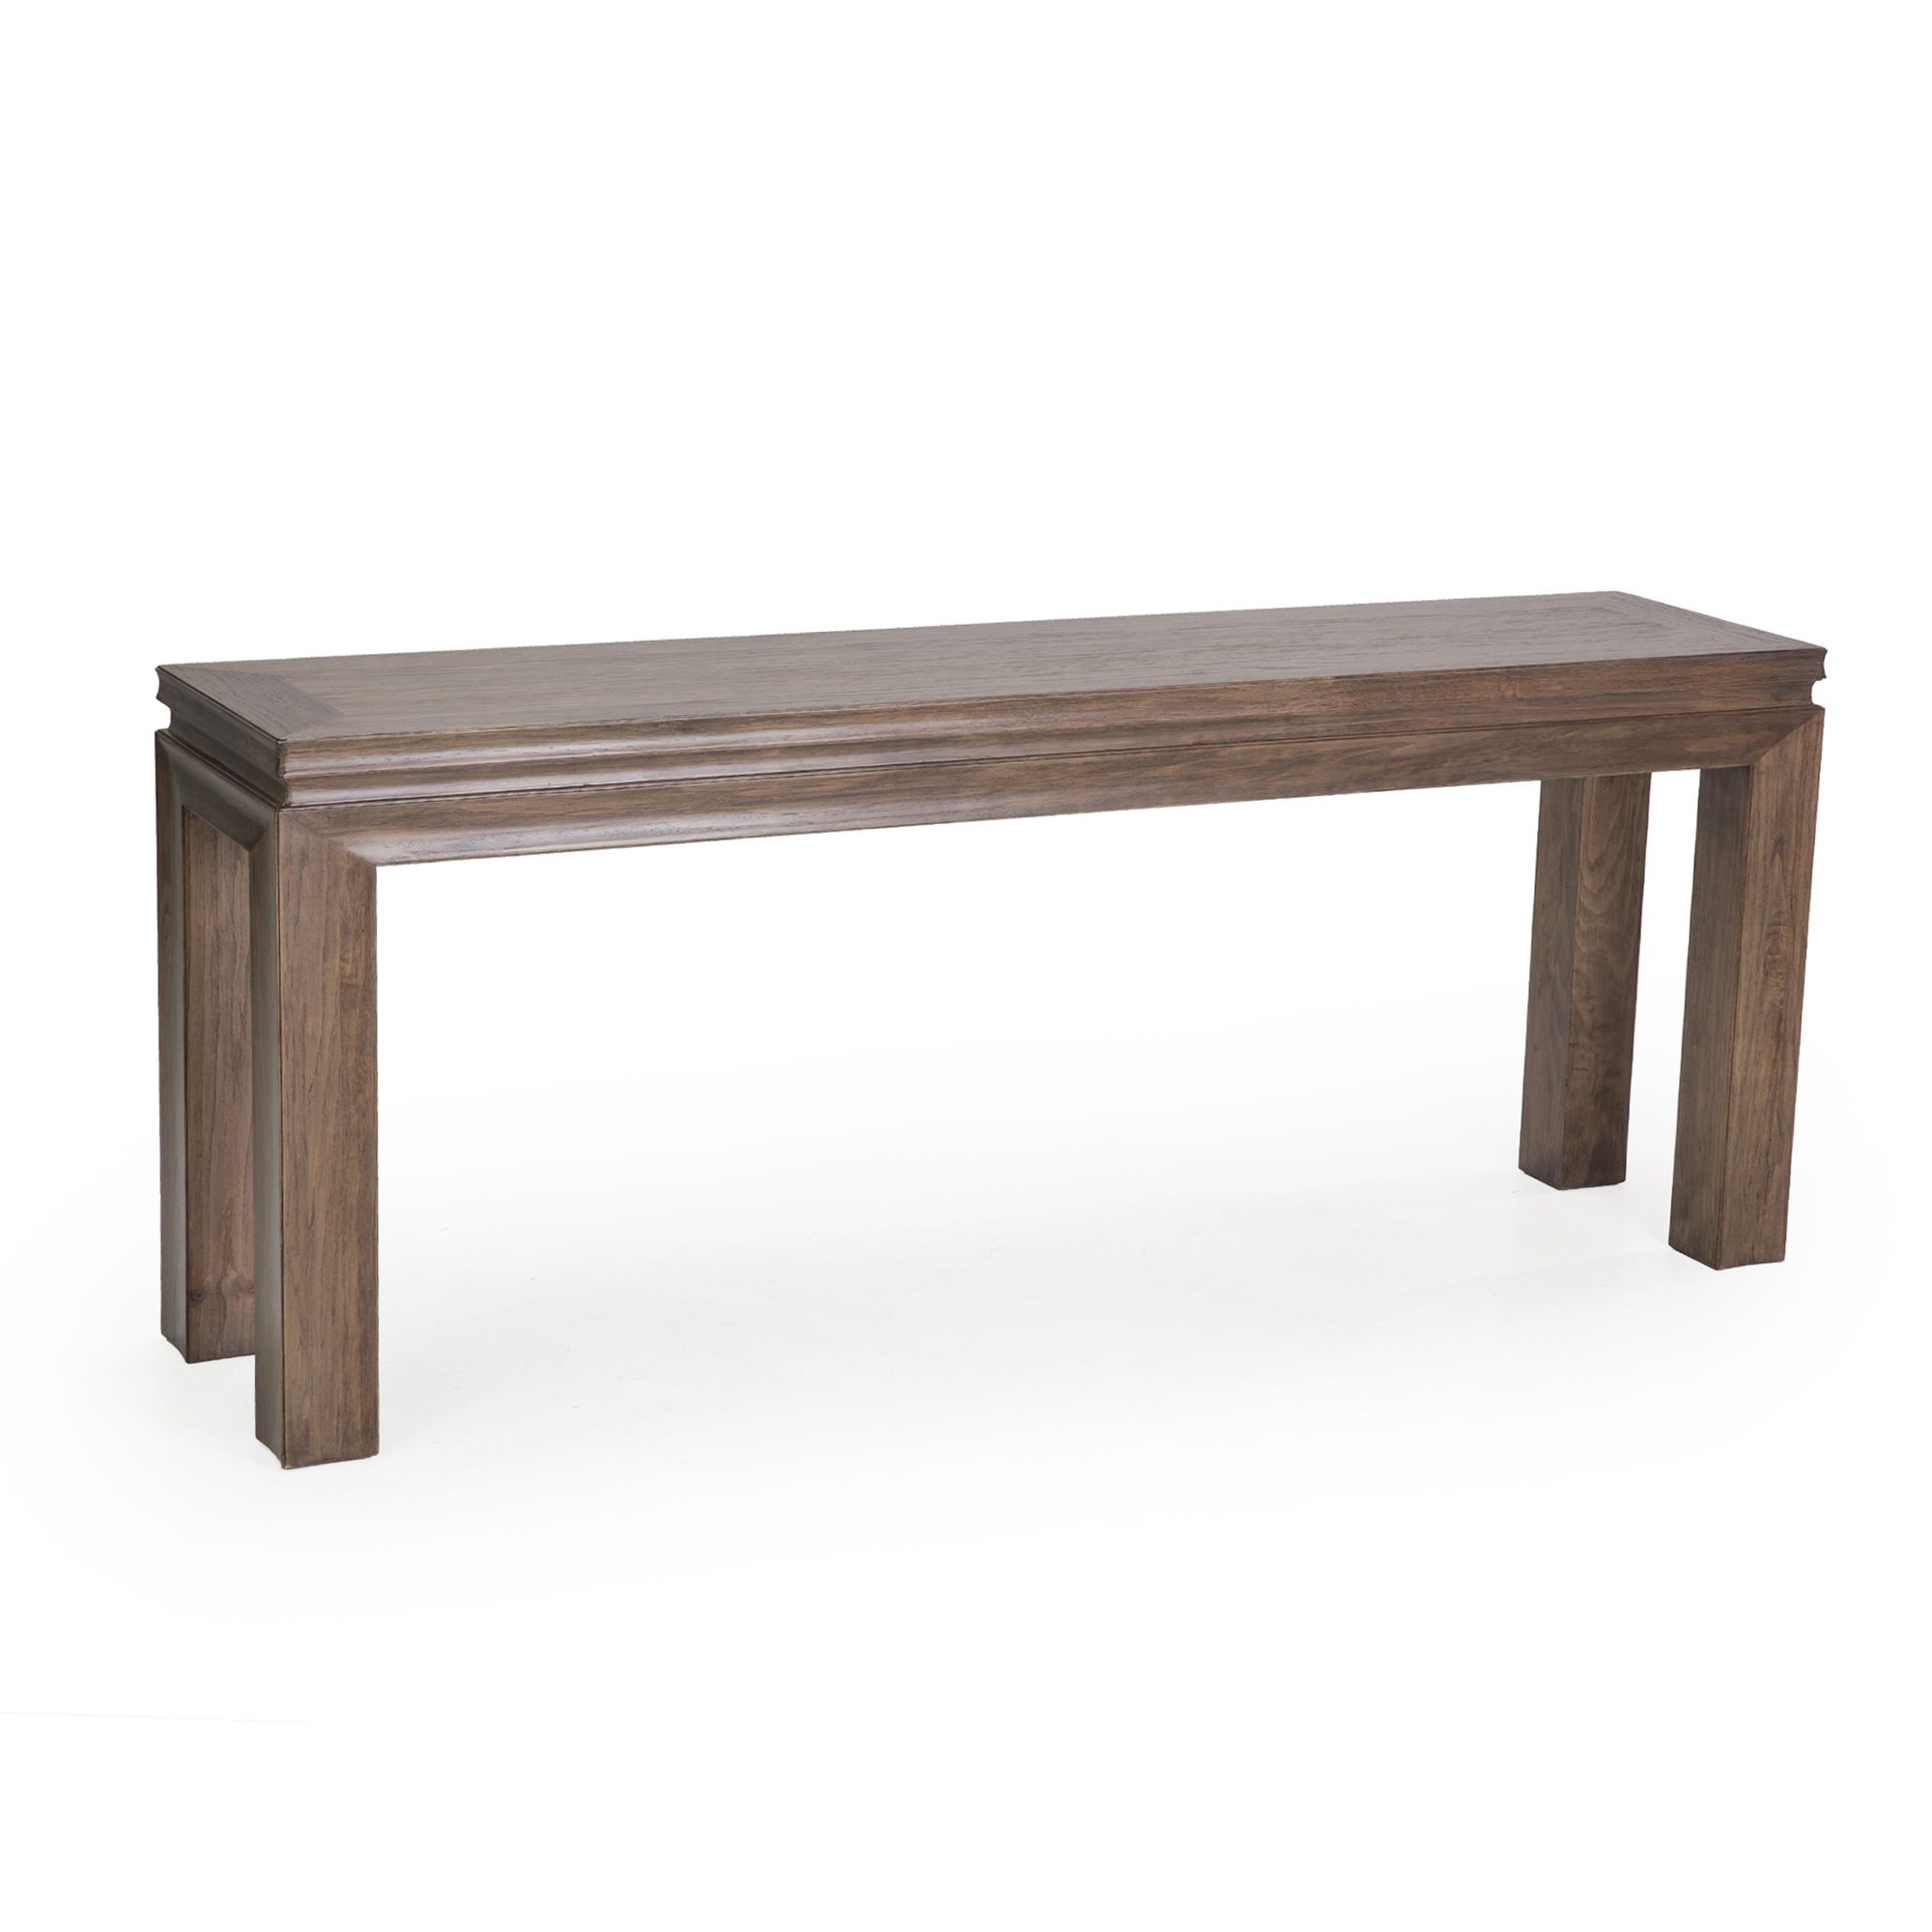 "Maria Yee Aptos 72"" Console Table"